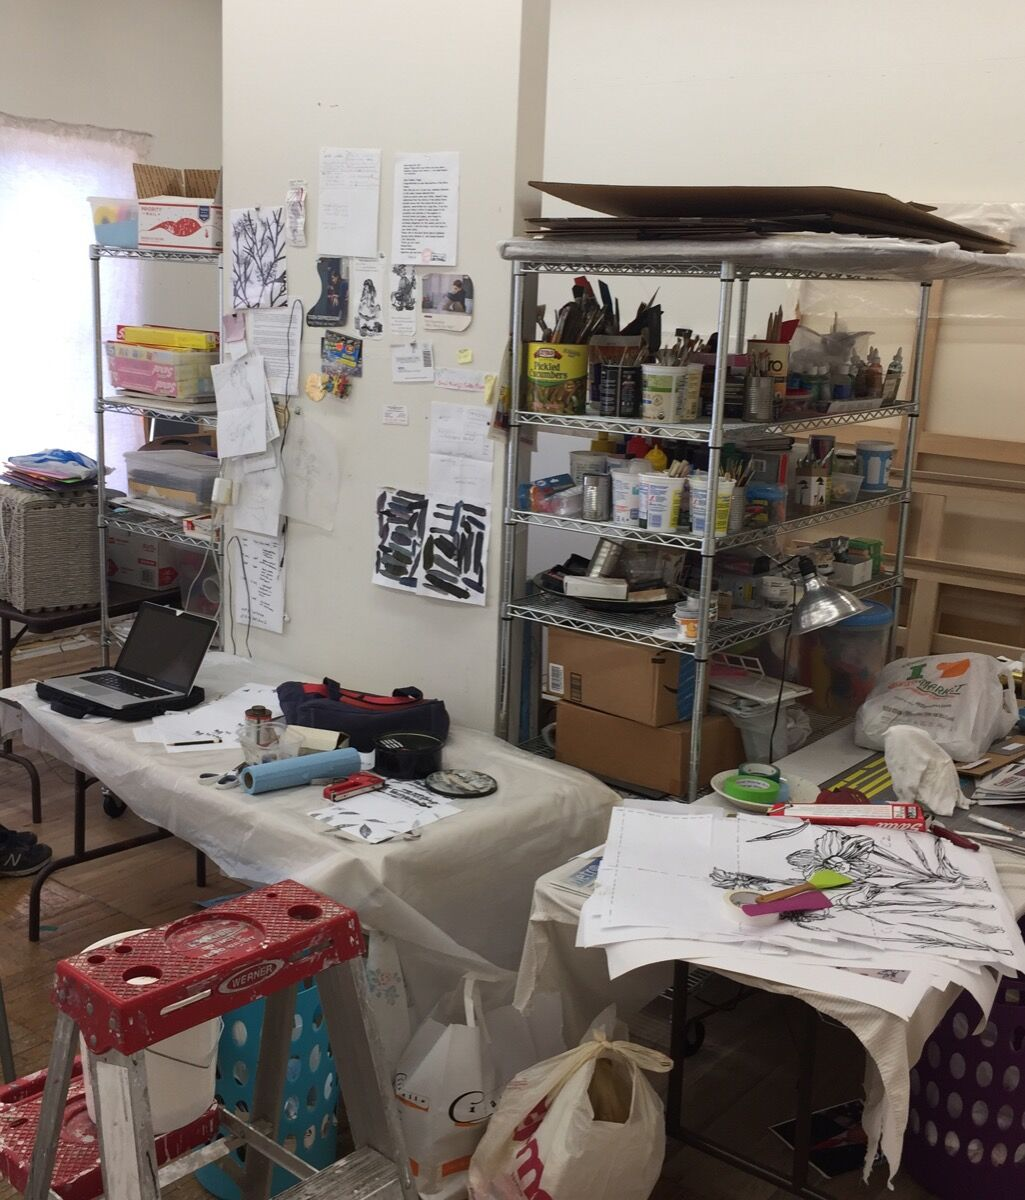 Ghada Amer and Reza Farkhondeh's shared studio space. Courtesy of the artists.